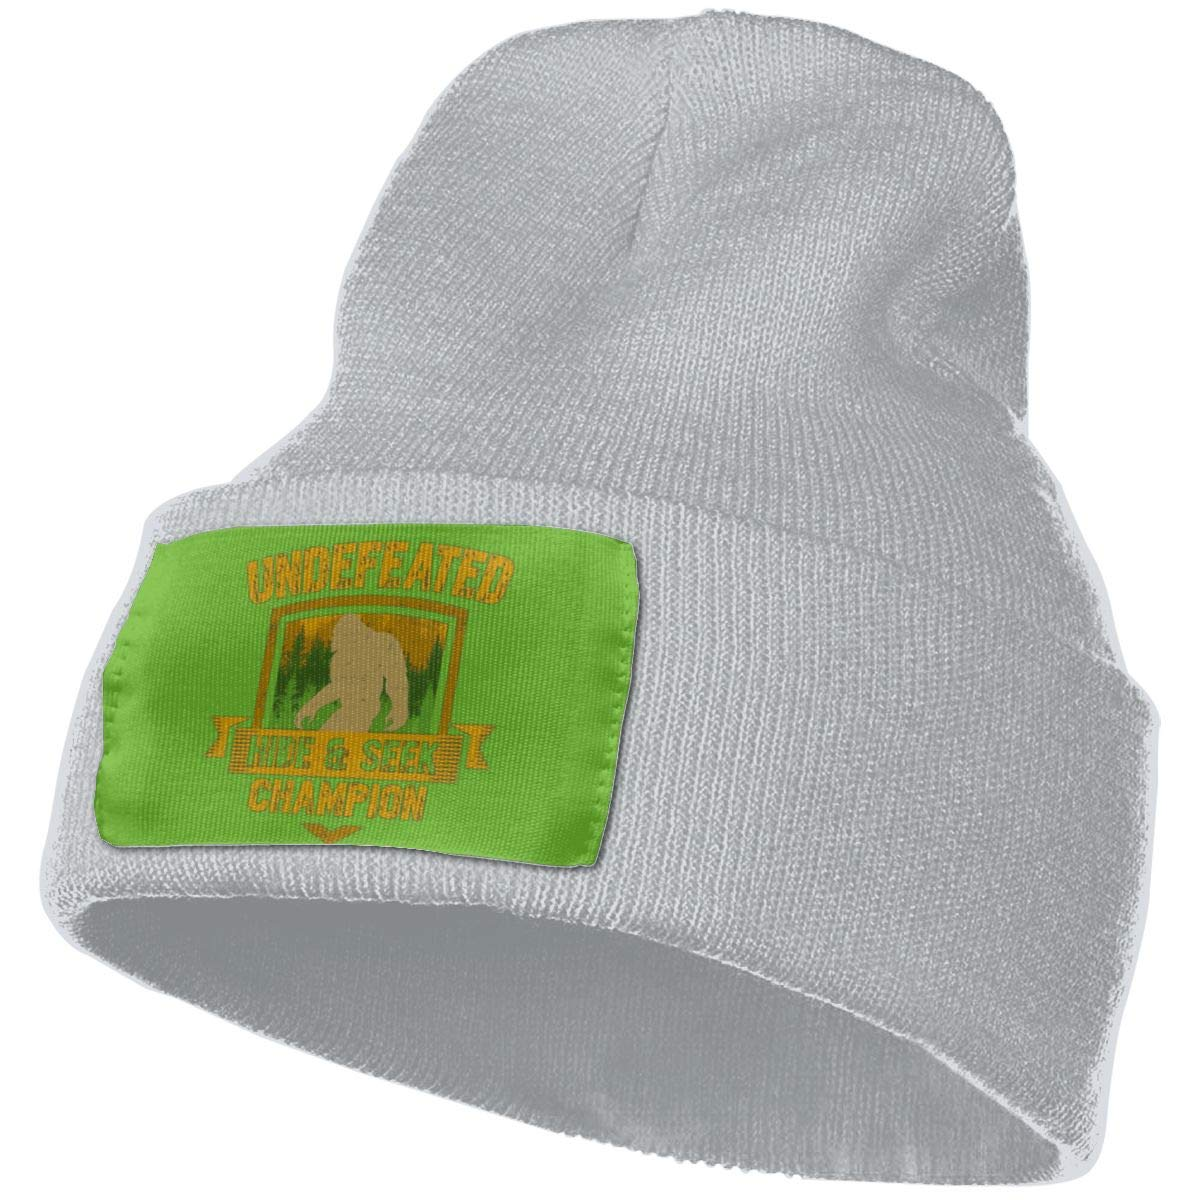 Undefeated Hide and Seek Champion Bigfoot 2 Wool Cap Skull Hat Unisex Winter